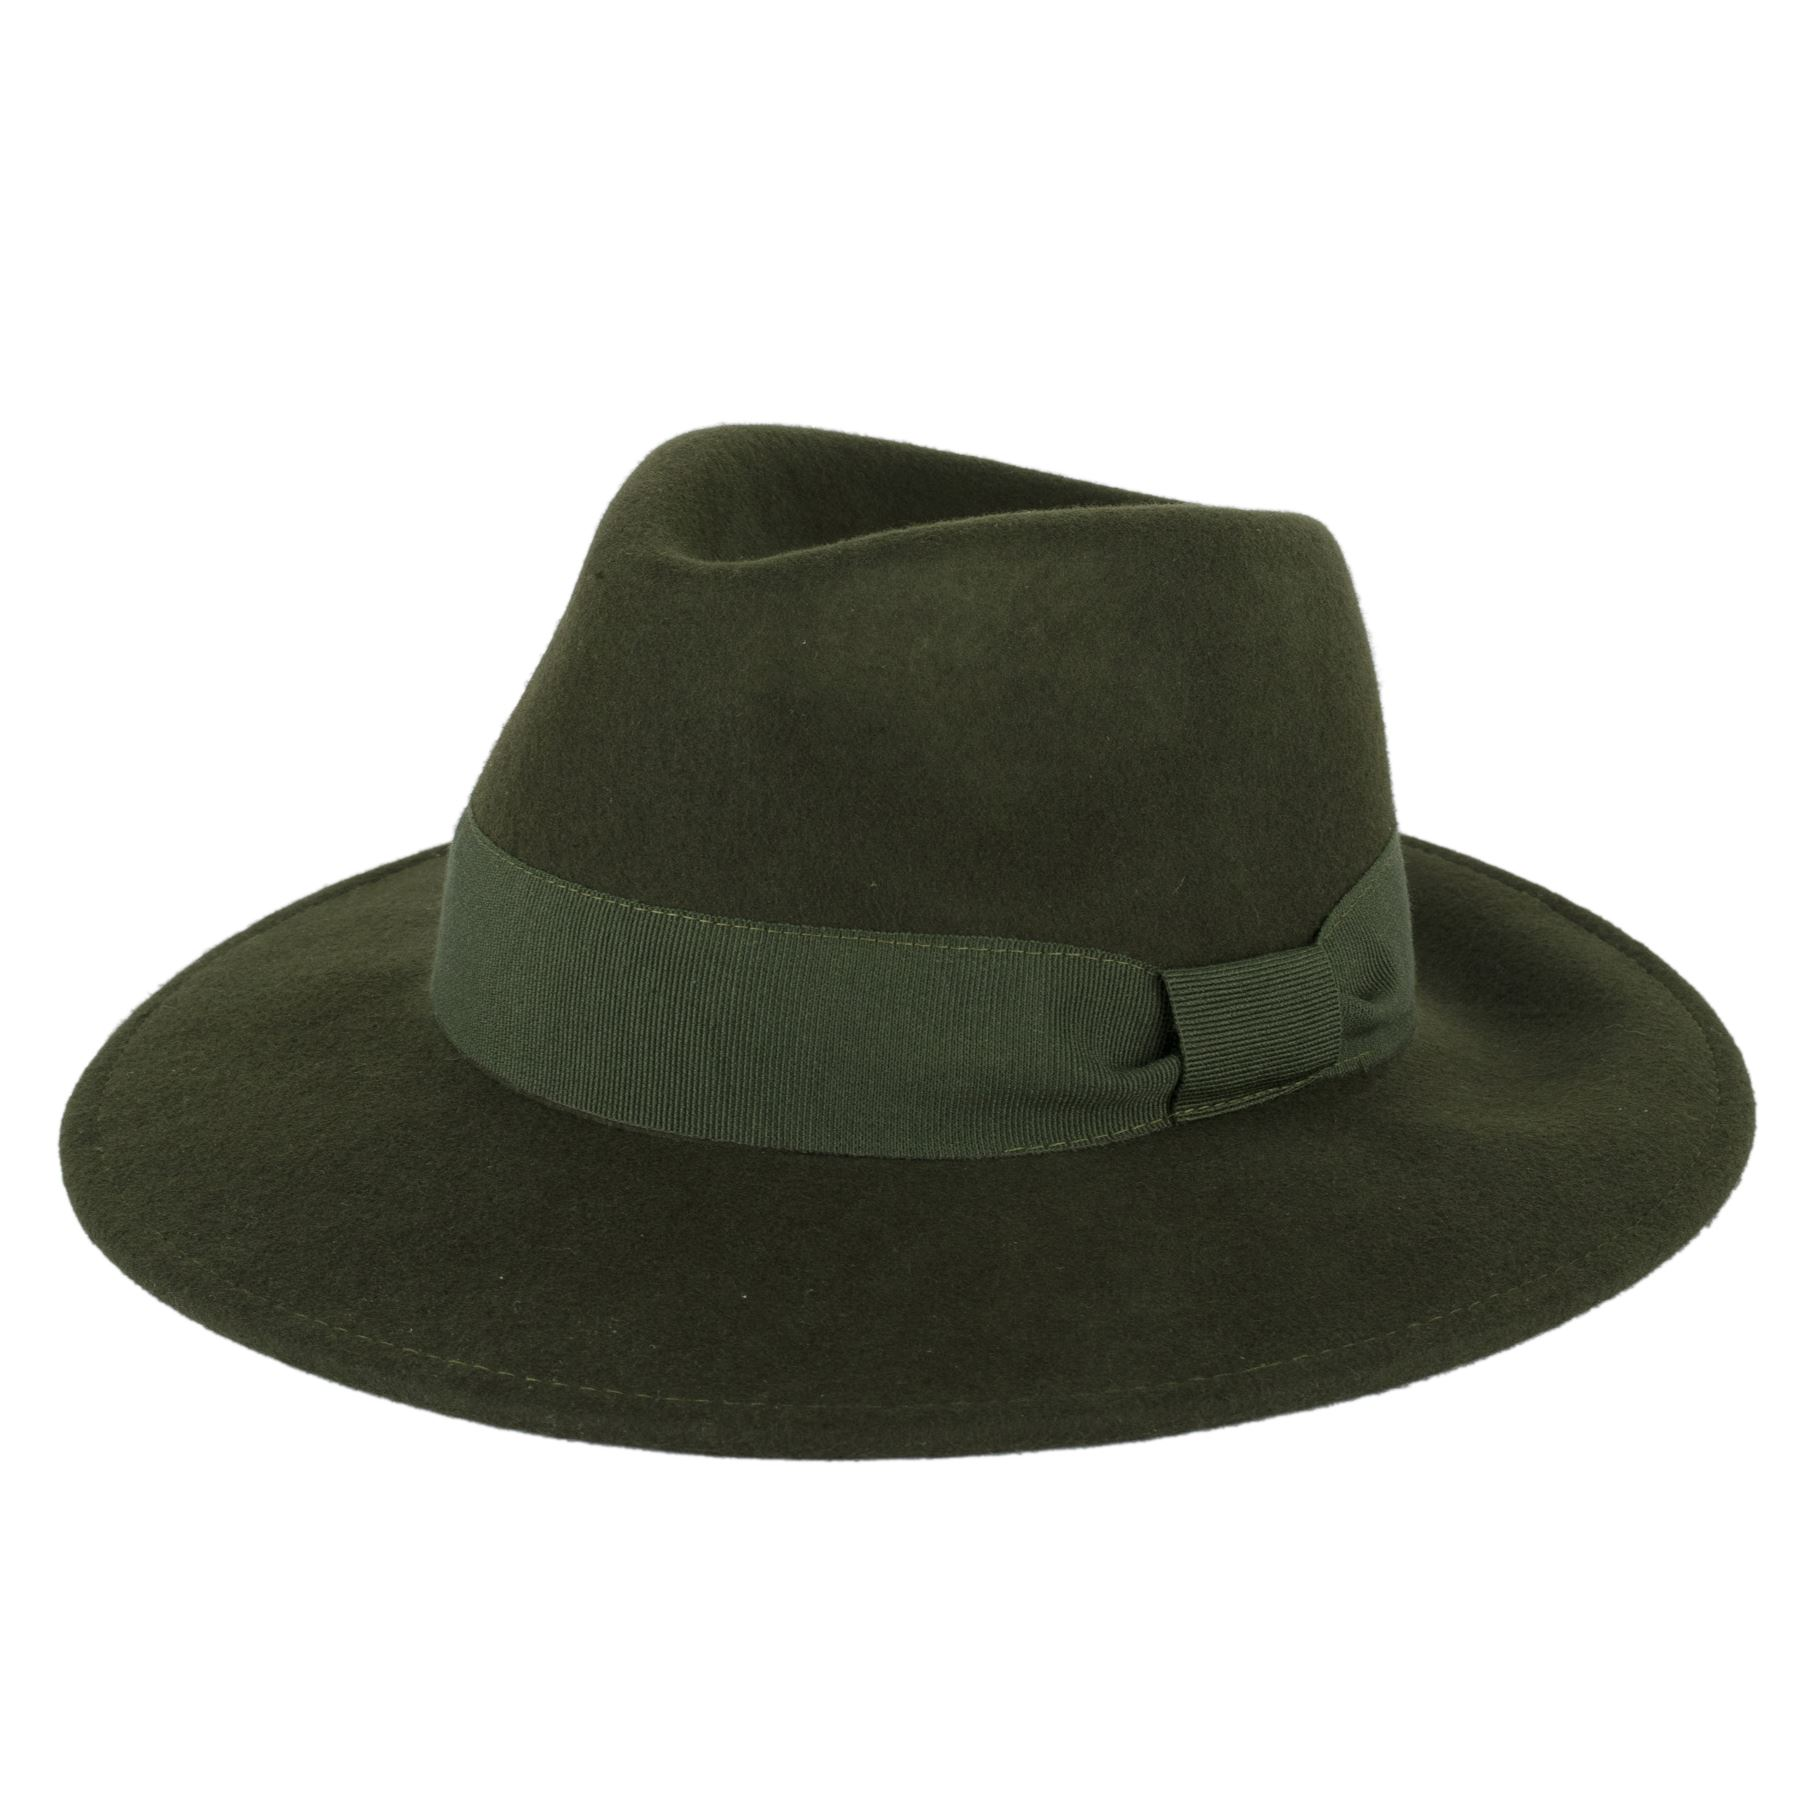 Mens Ladies 100 Wool Handmade in Italy Unisex Fedora Hat With ... 03551f84dcc